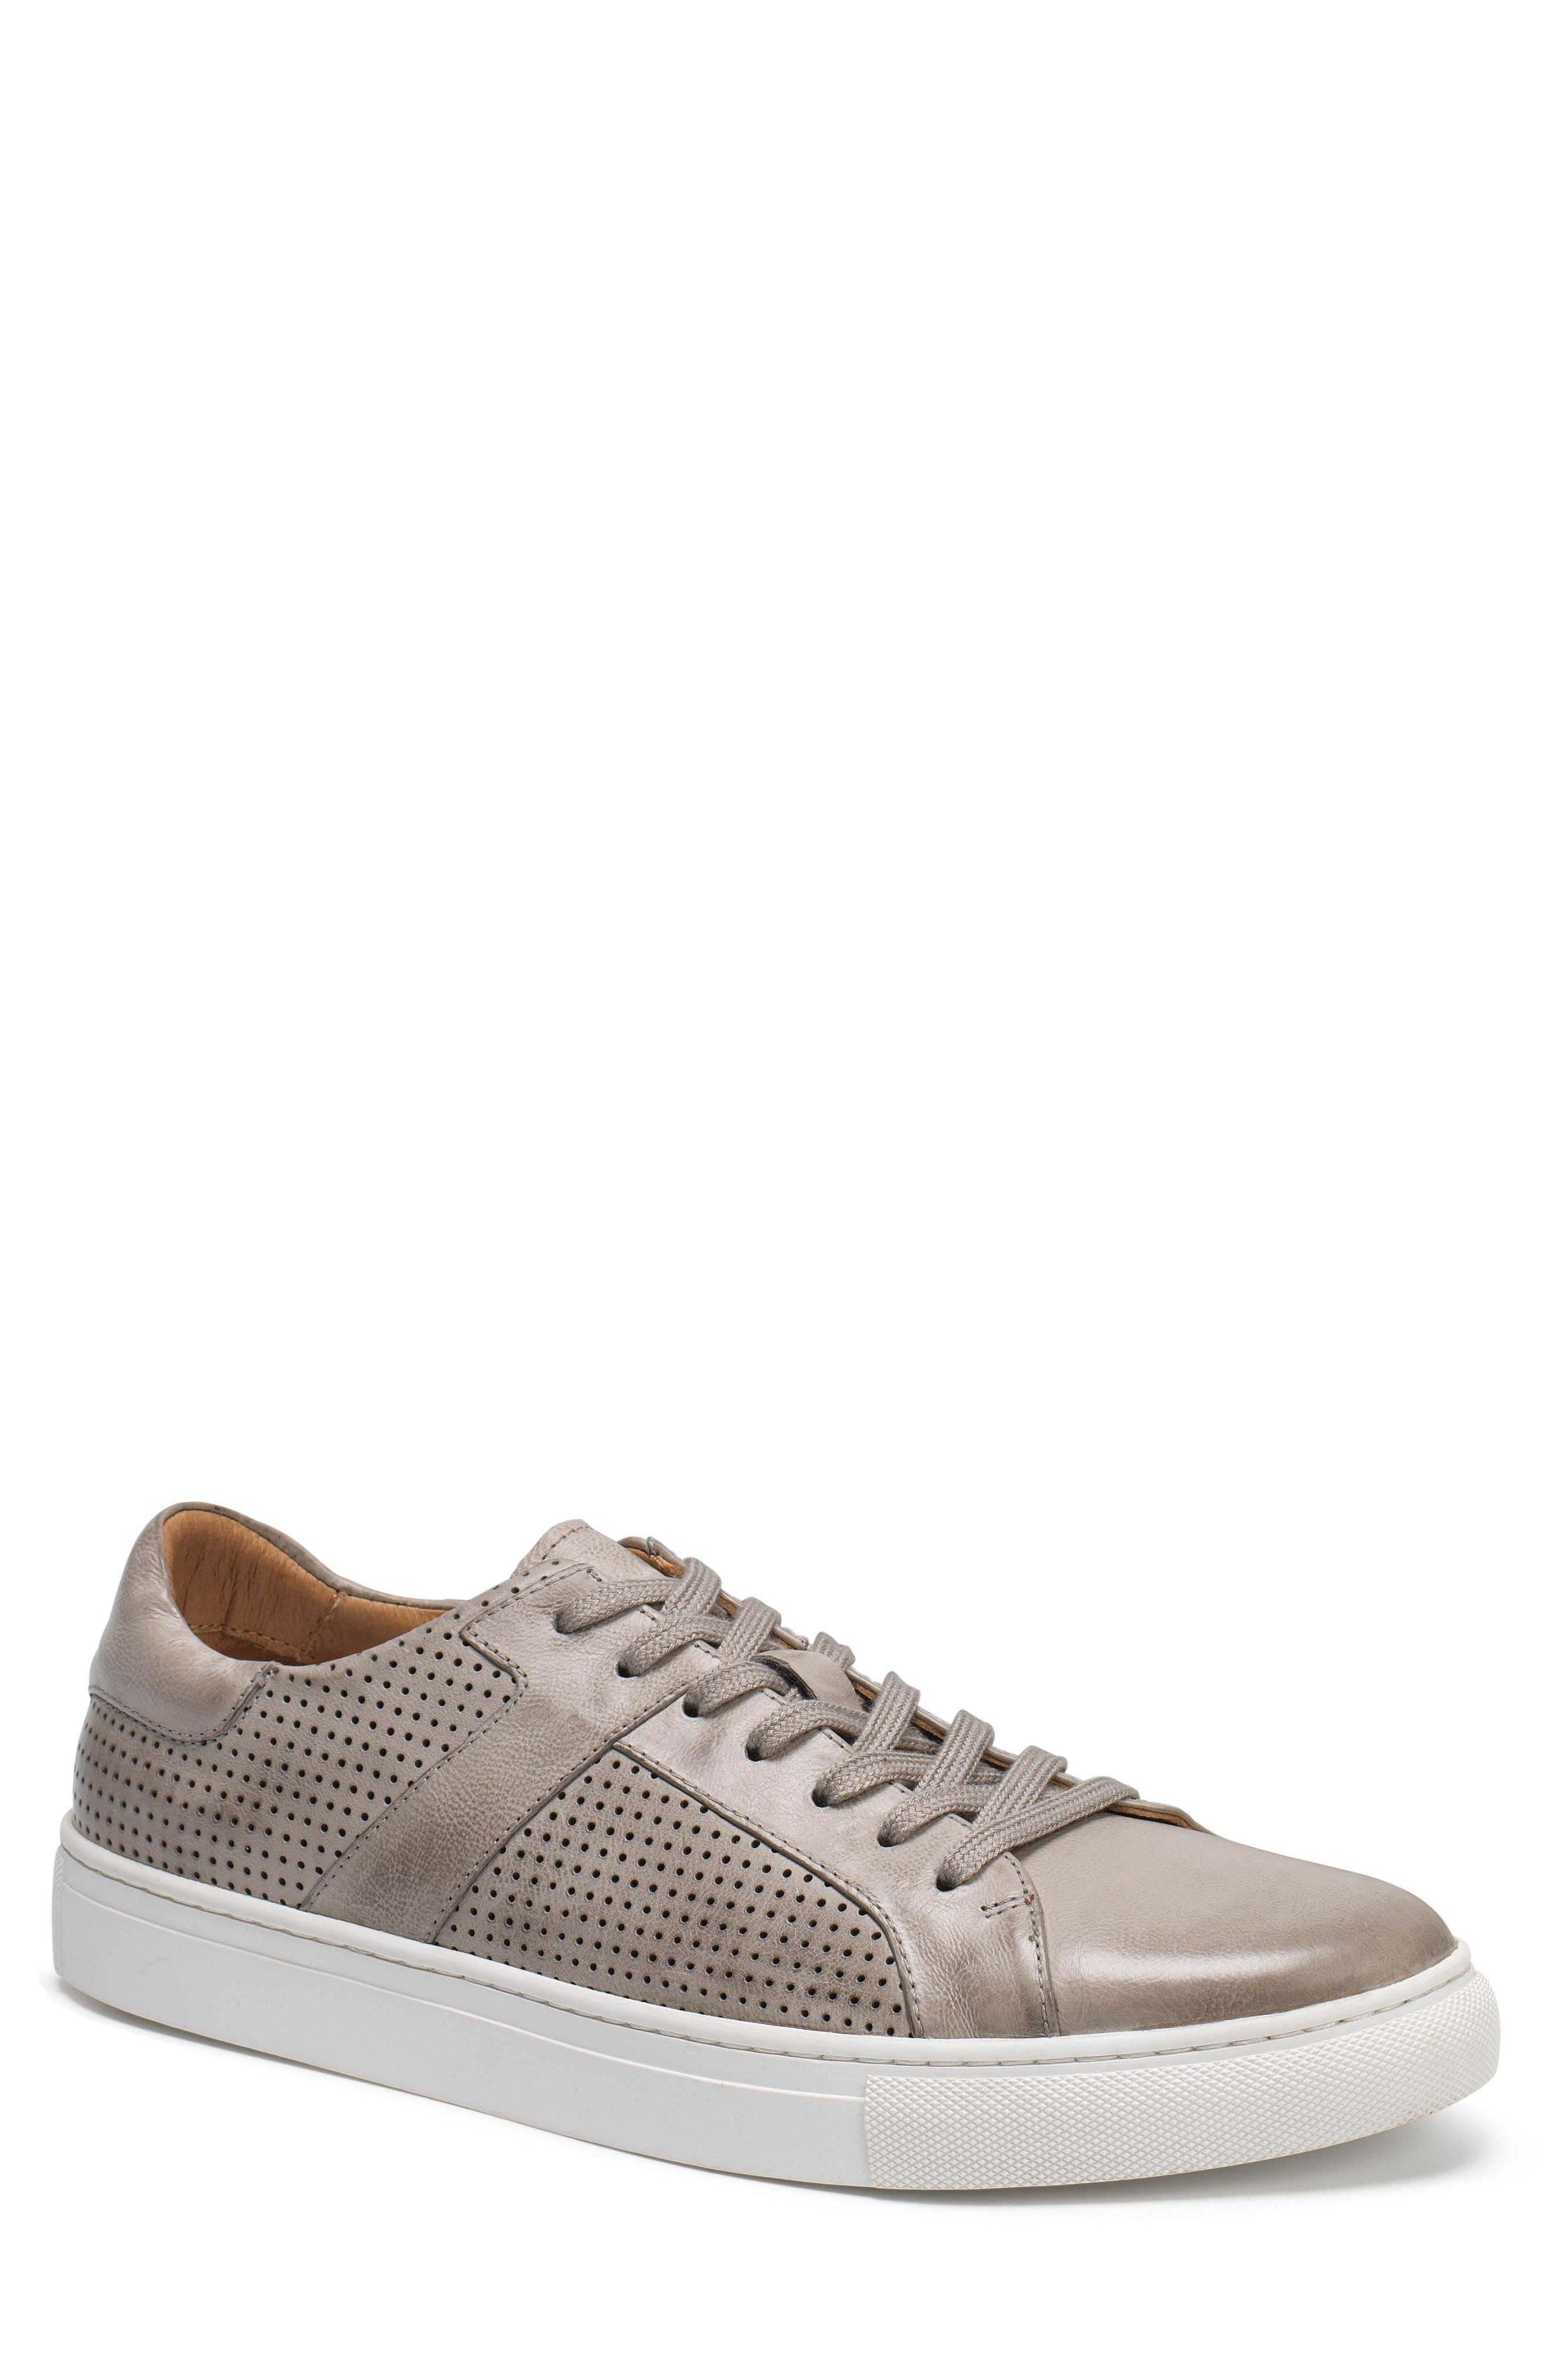 Aaron Sneaker,                             Main thumbnail 1, color,                             Light Grey Leather